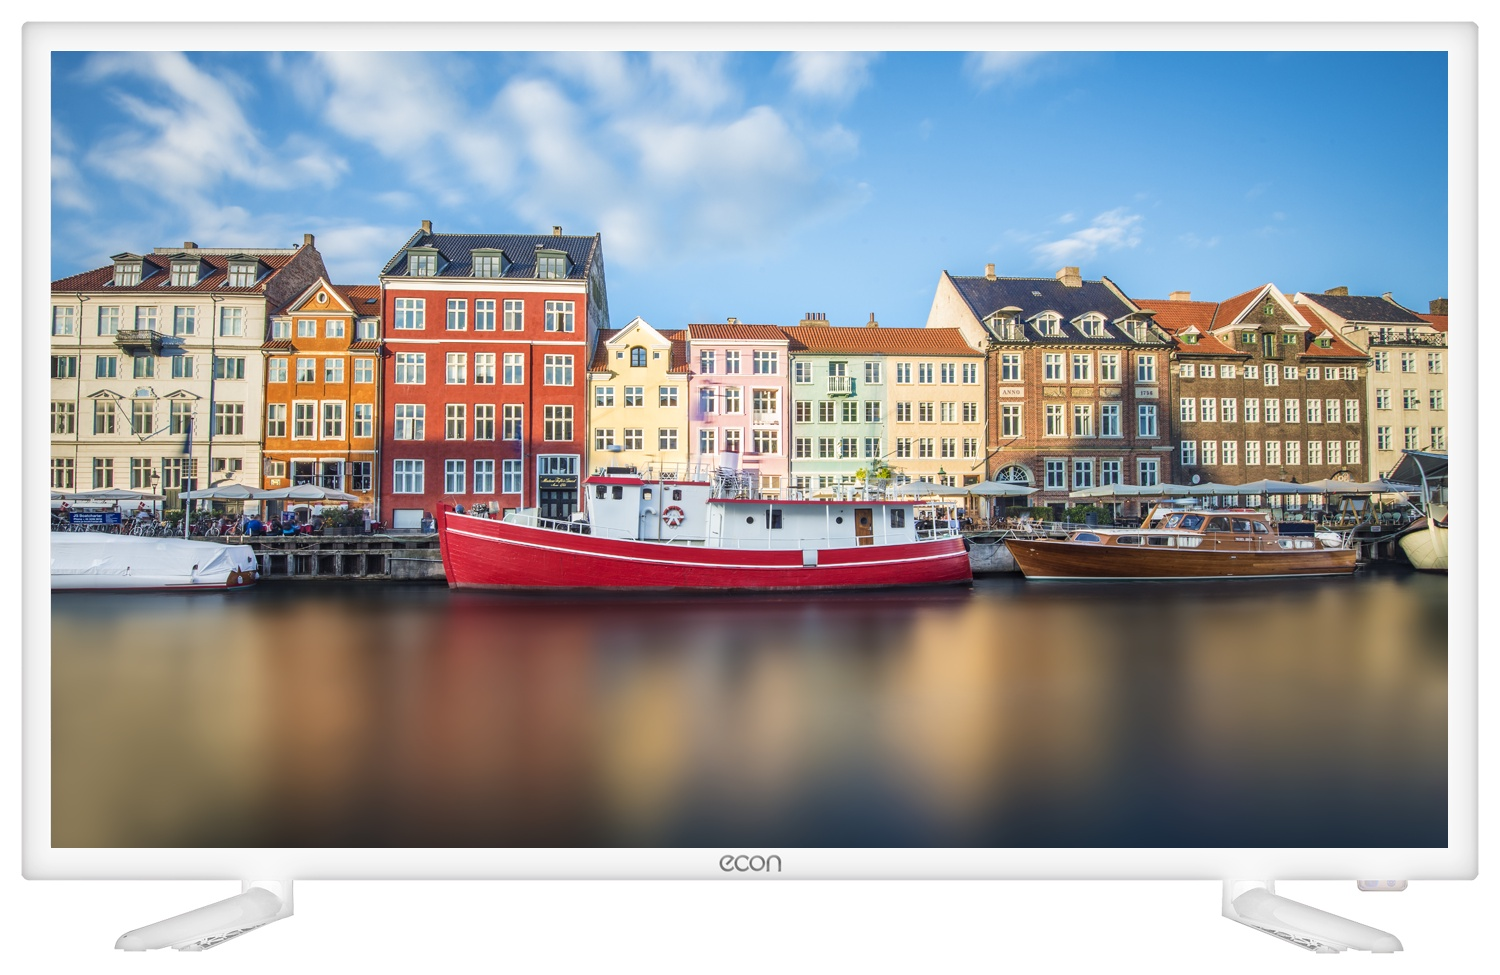 "Телевизор ECON LED SMART TV, 32"" (81см), с встроенным цифровым тюнером и модулем WI-FI 32"", белый"